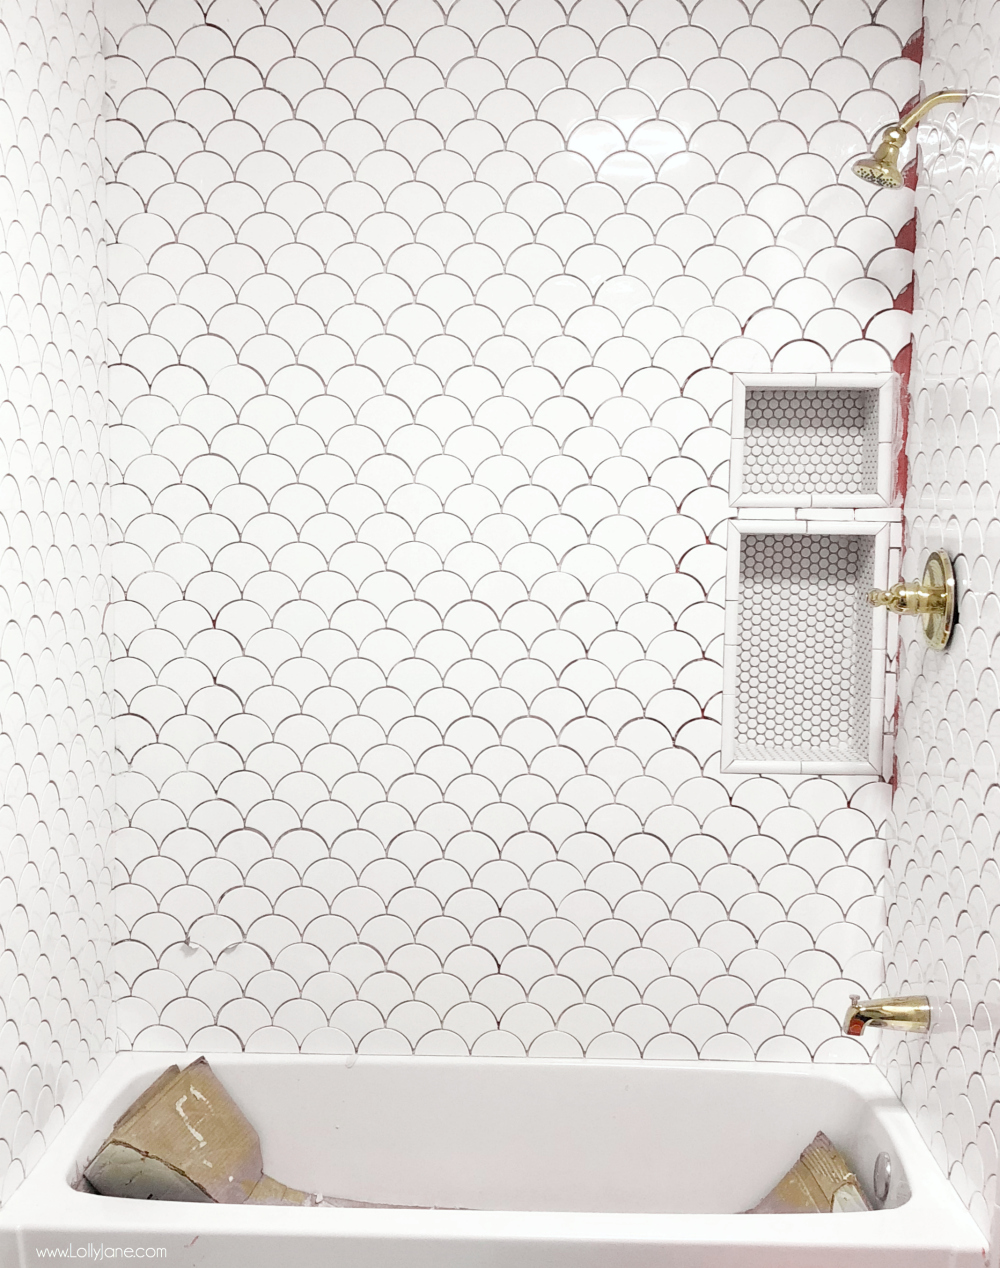 Easy DIY Fan Tile, love the scallop fish scale look! Click to see these useful tips when renovating a bathroom!